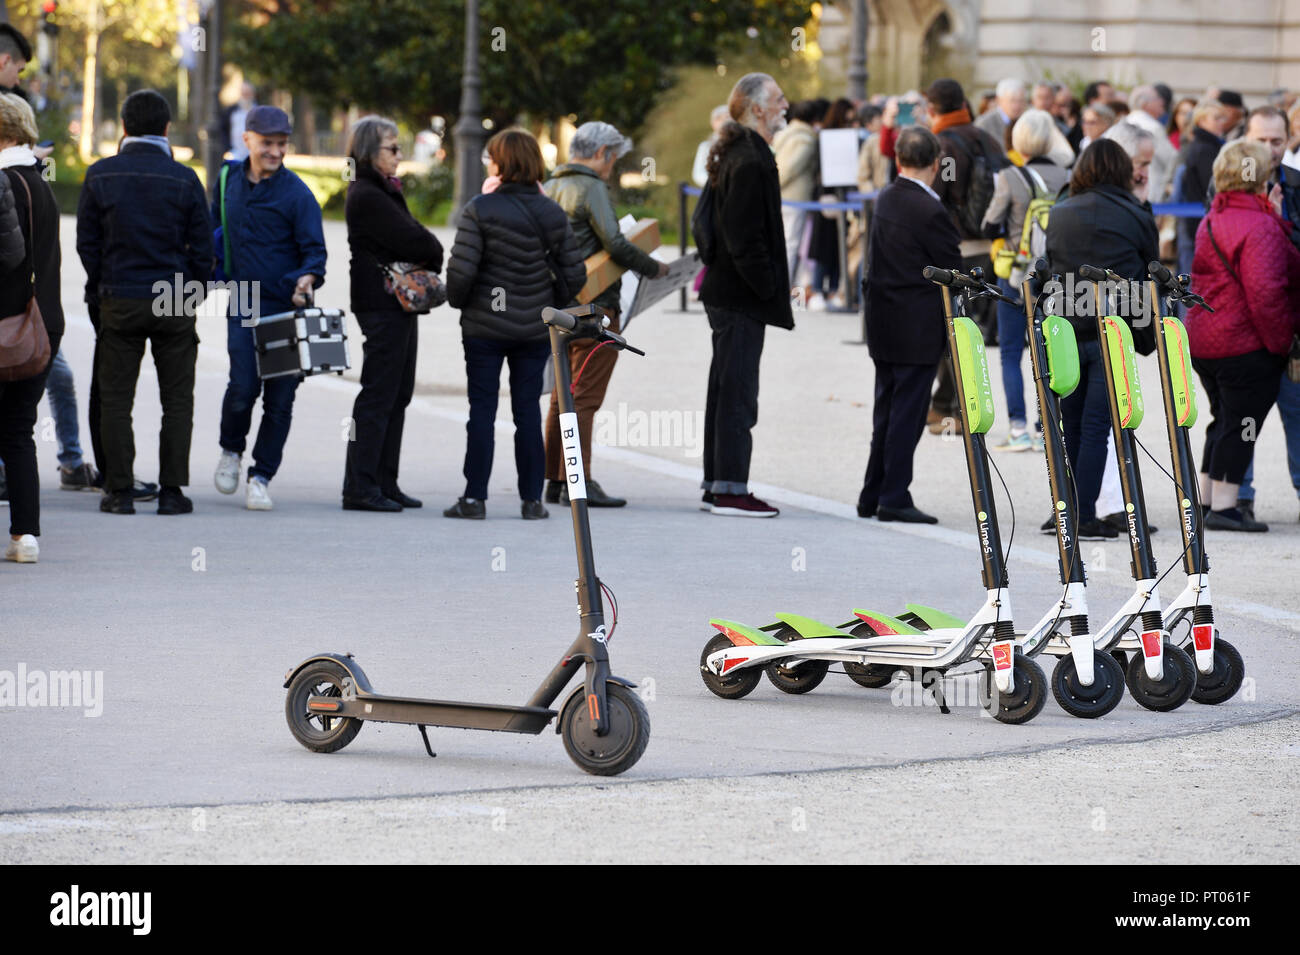 Lime's Scooter - Paris - France - Stock Image